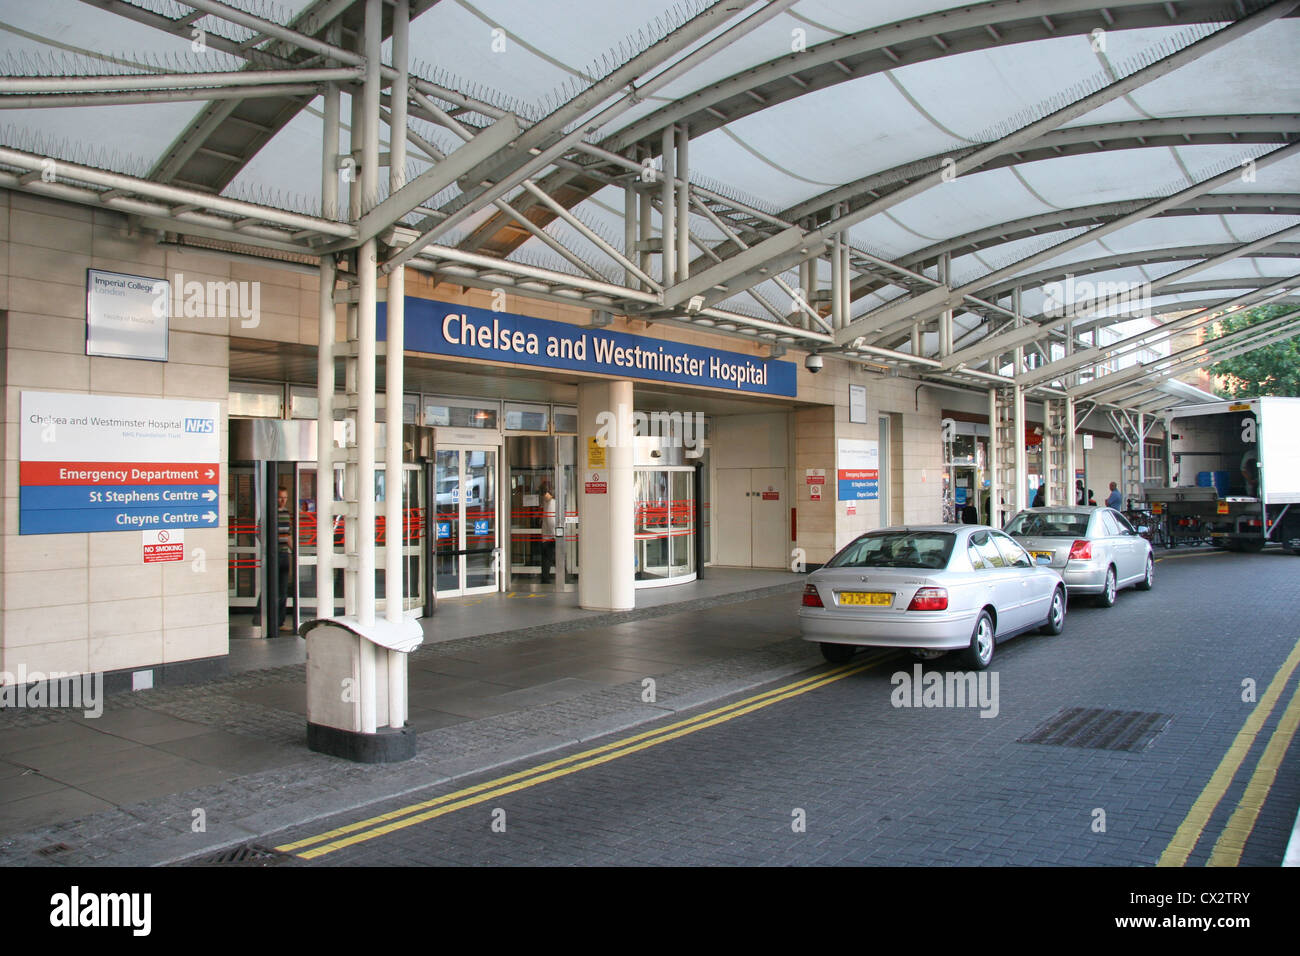 Cars parked at the entrance to Chelsea and Westminster Hospital, Fulham Rd, London SW10 9NH - Stock Image